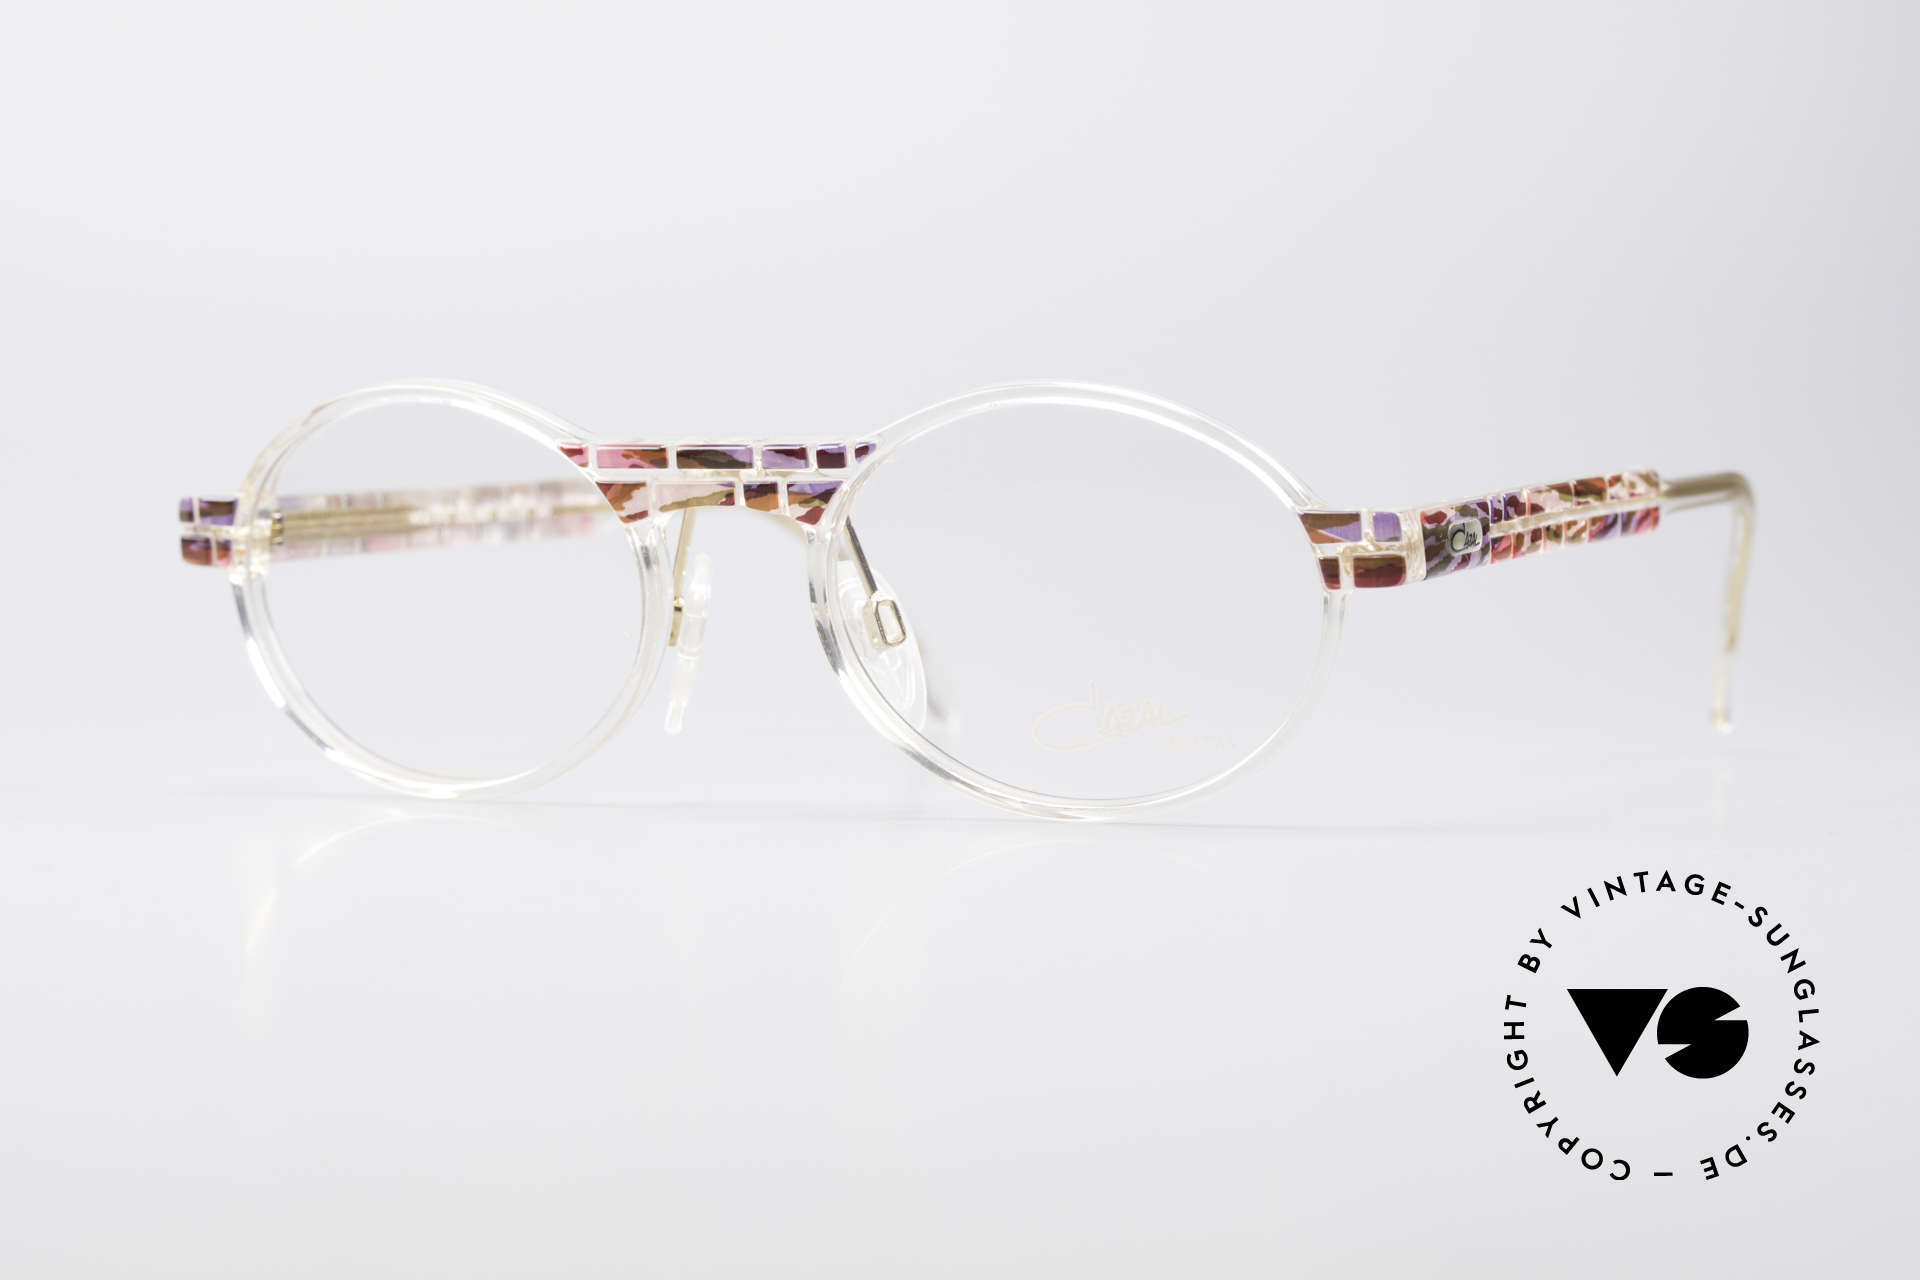 Cazal 510 Crystal Limited Vintage Specs, rare Cazal vintage glasses of the Crystal 500's Series, Made for Women